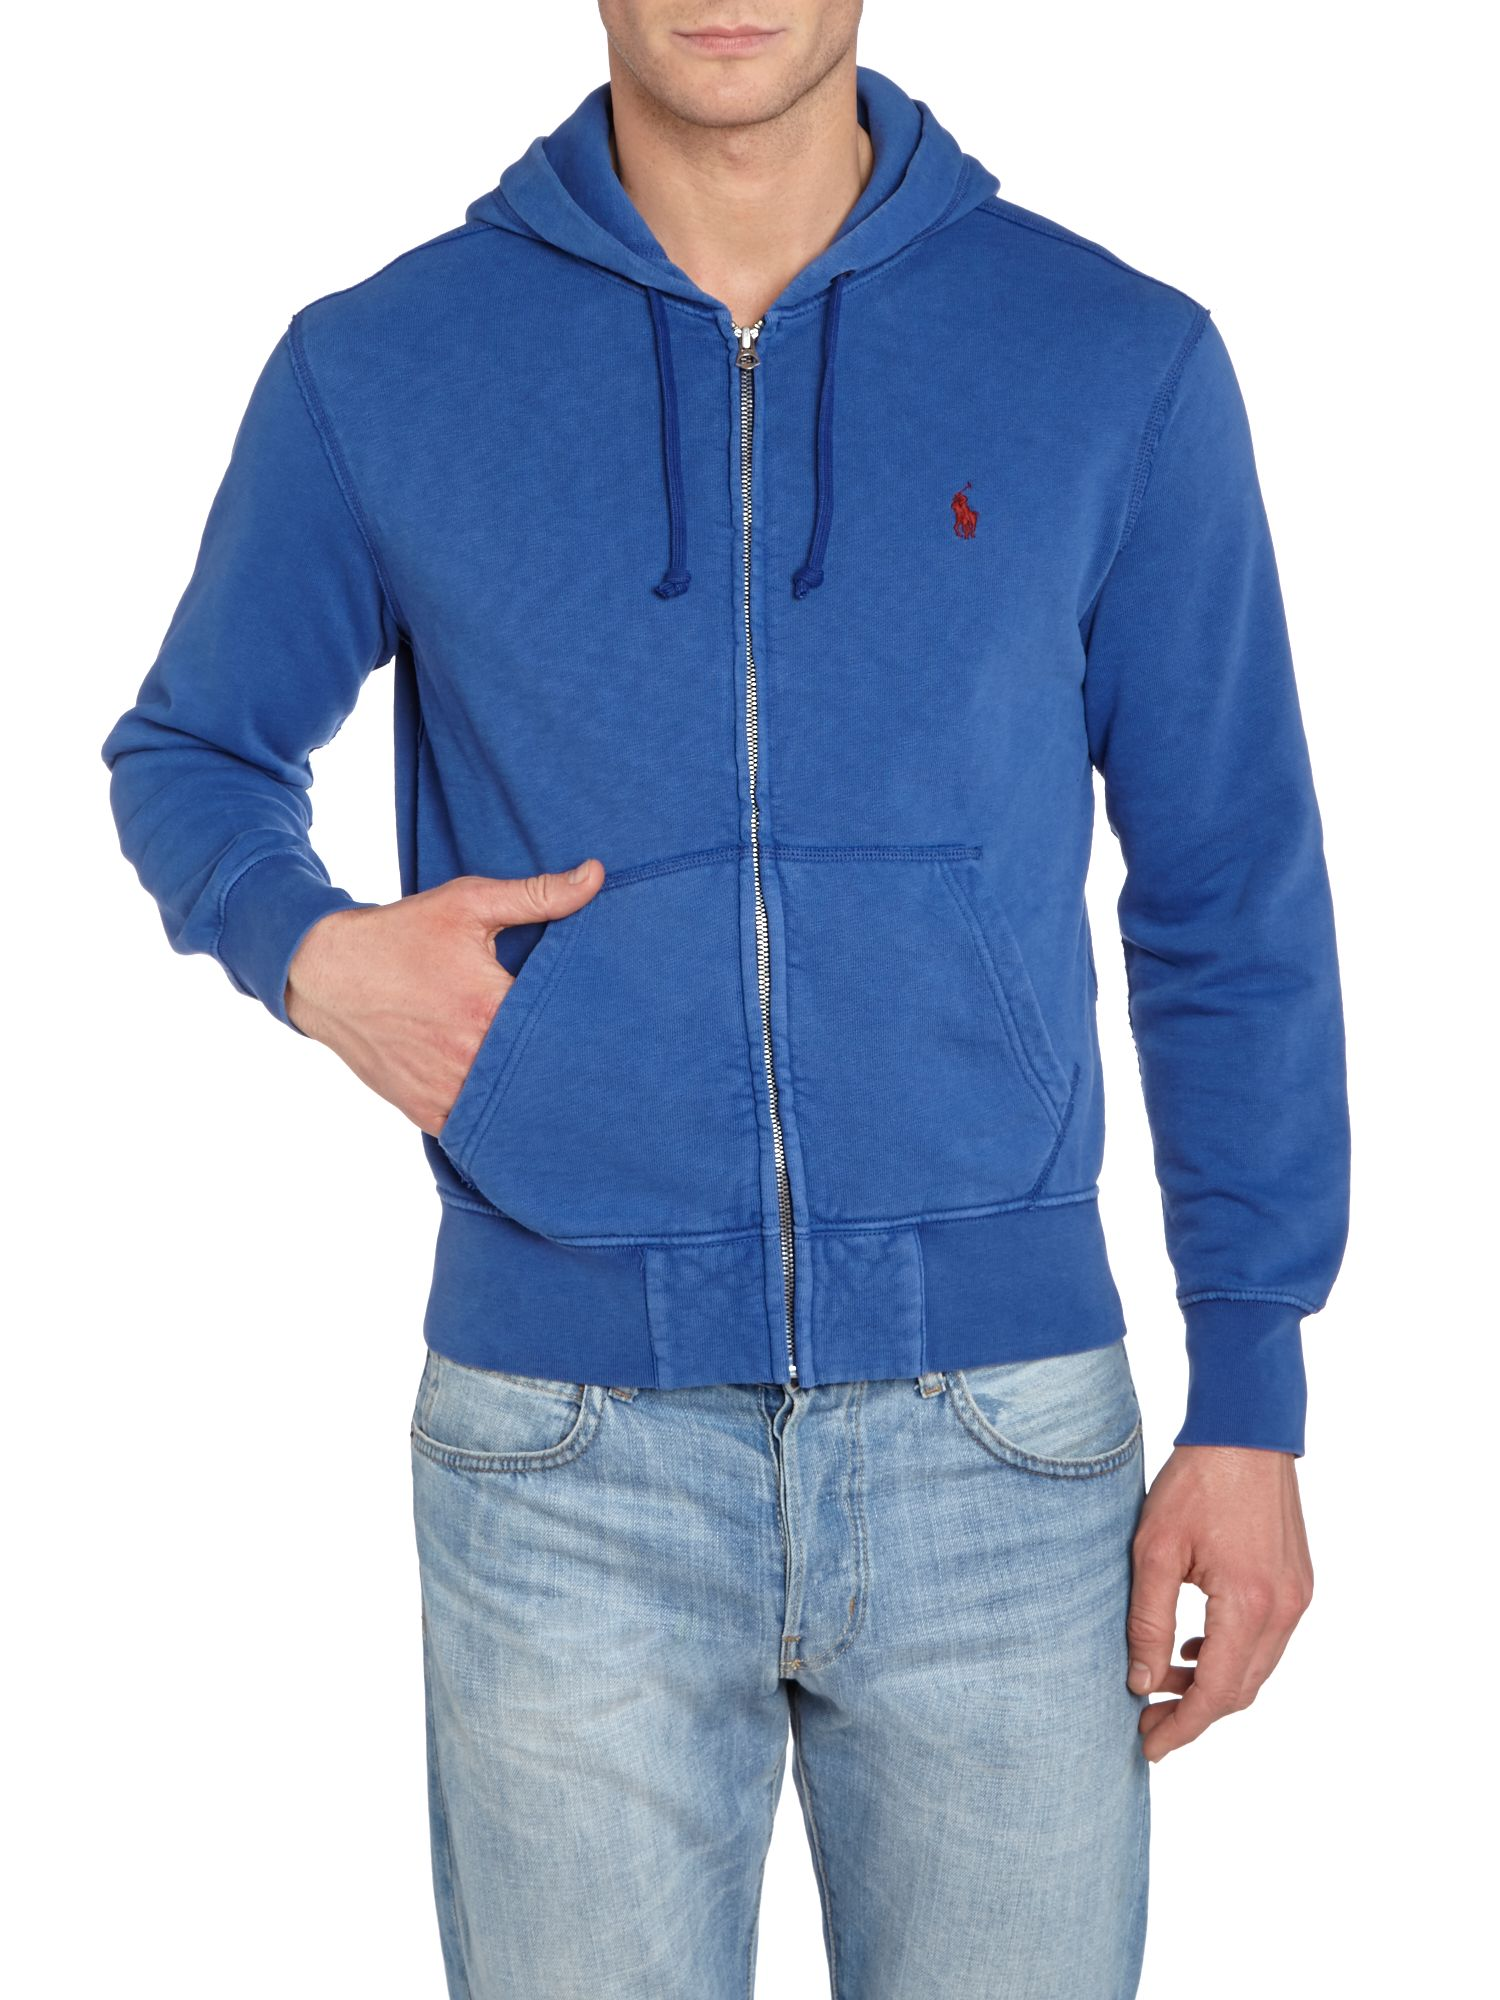 Classic zip through hooded sweatshirt